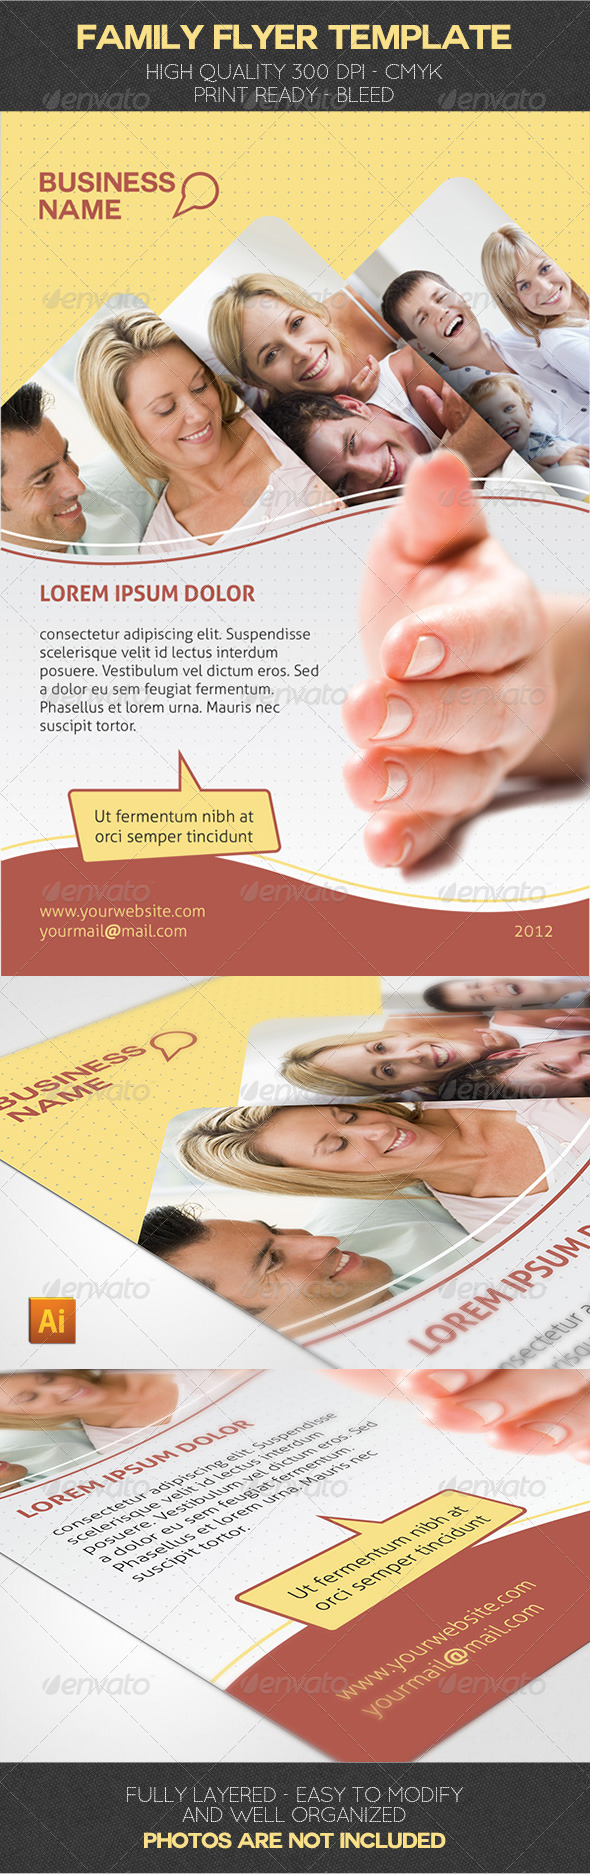 Family Flyer Template - Corporate Flyers